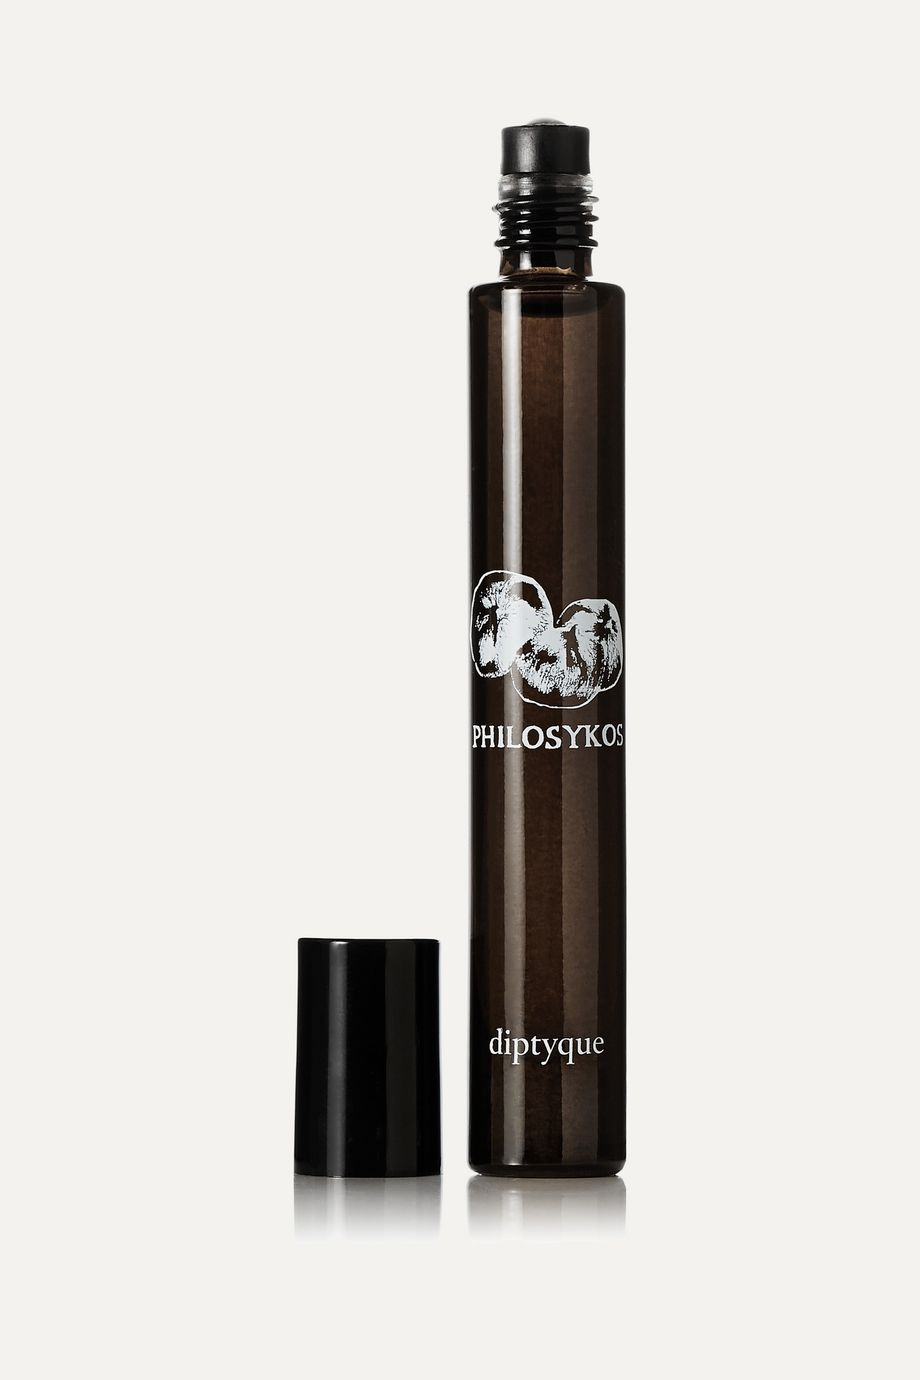 Diptyque Philosykos Perfumed Oil Roll-On - Fig Leaf, Fruit & Wood, 7.5ml